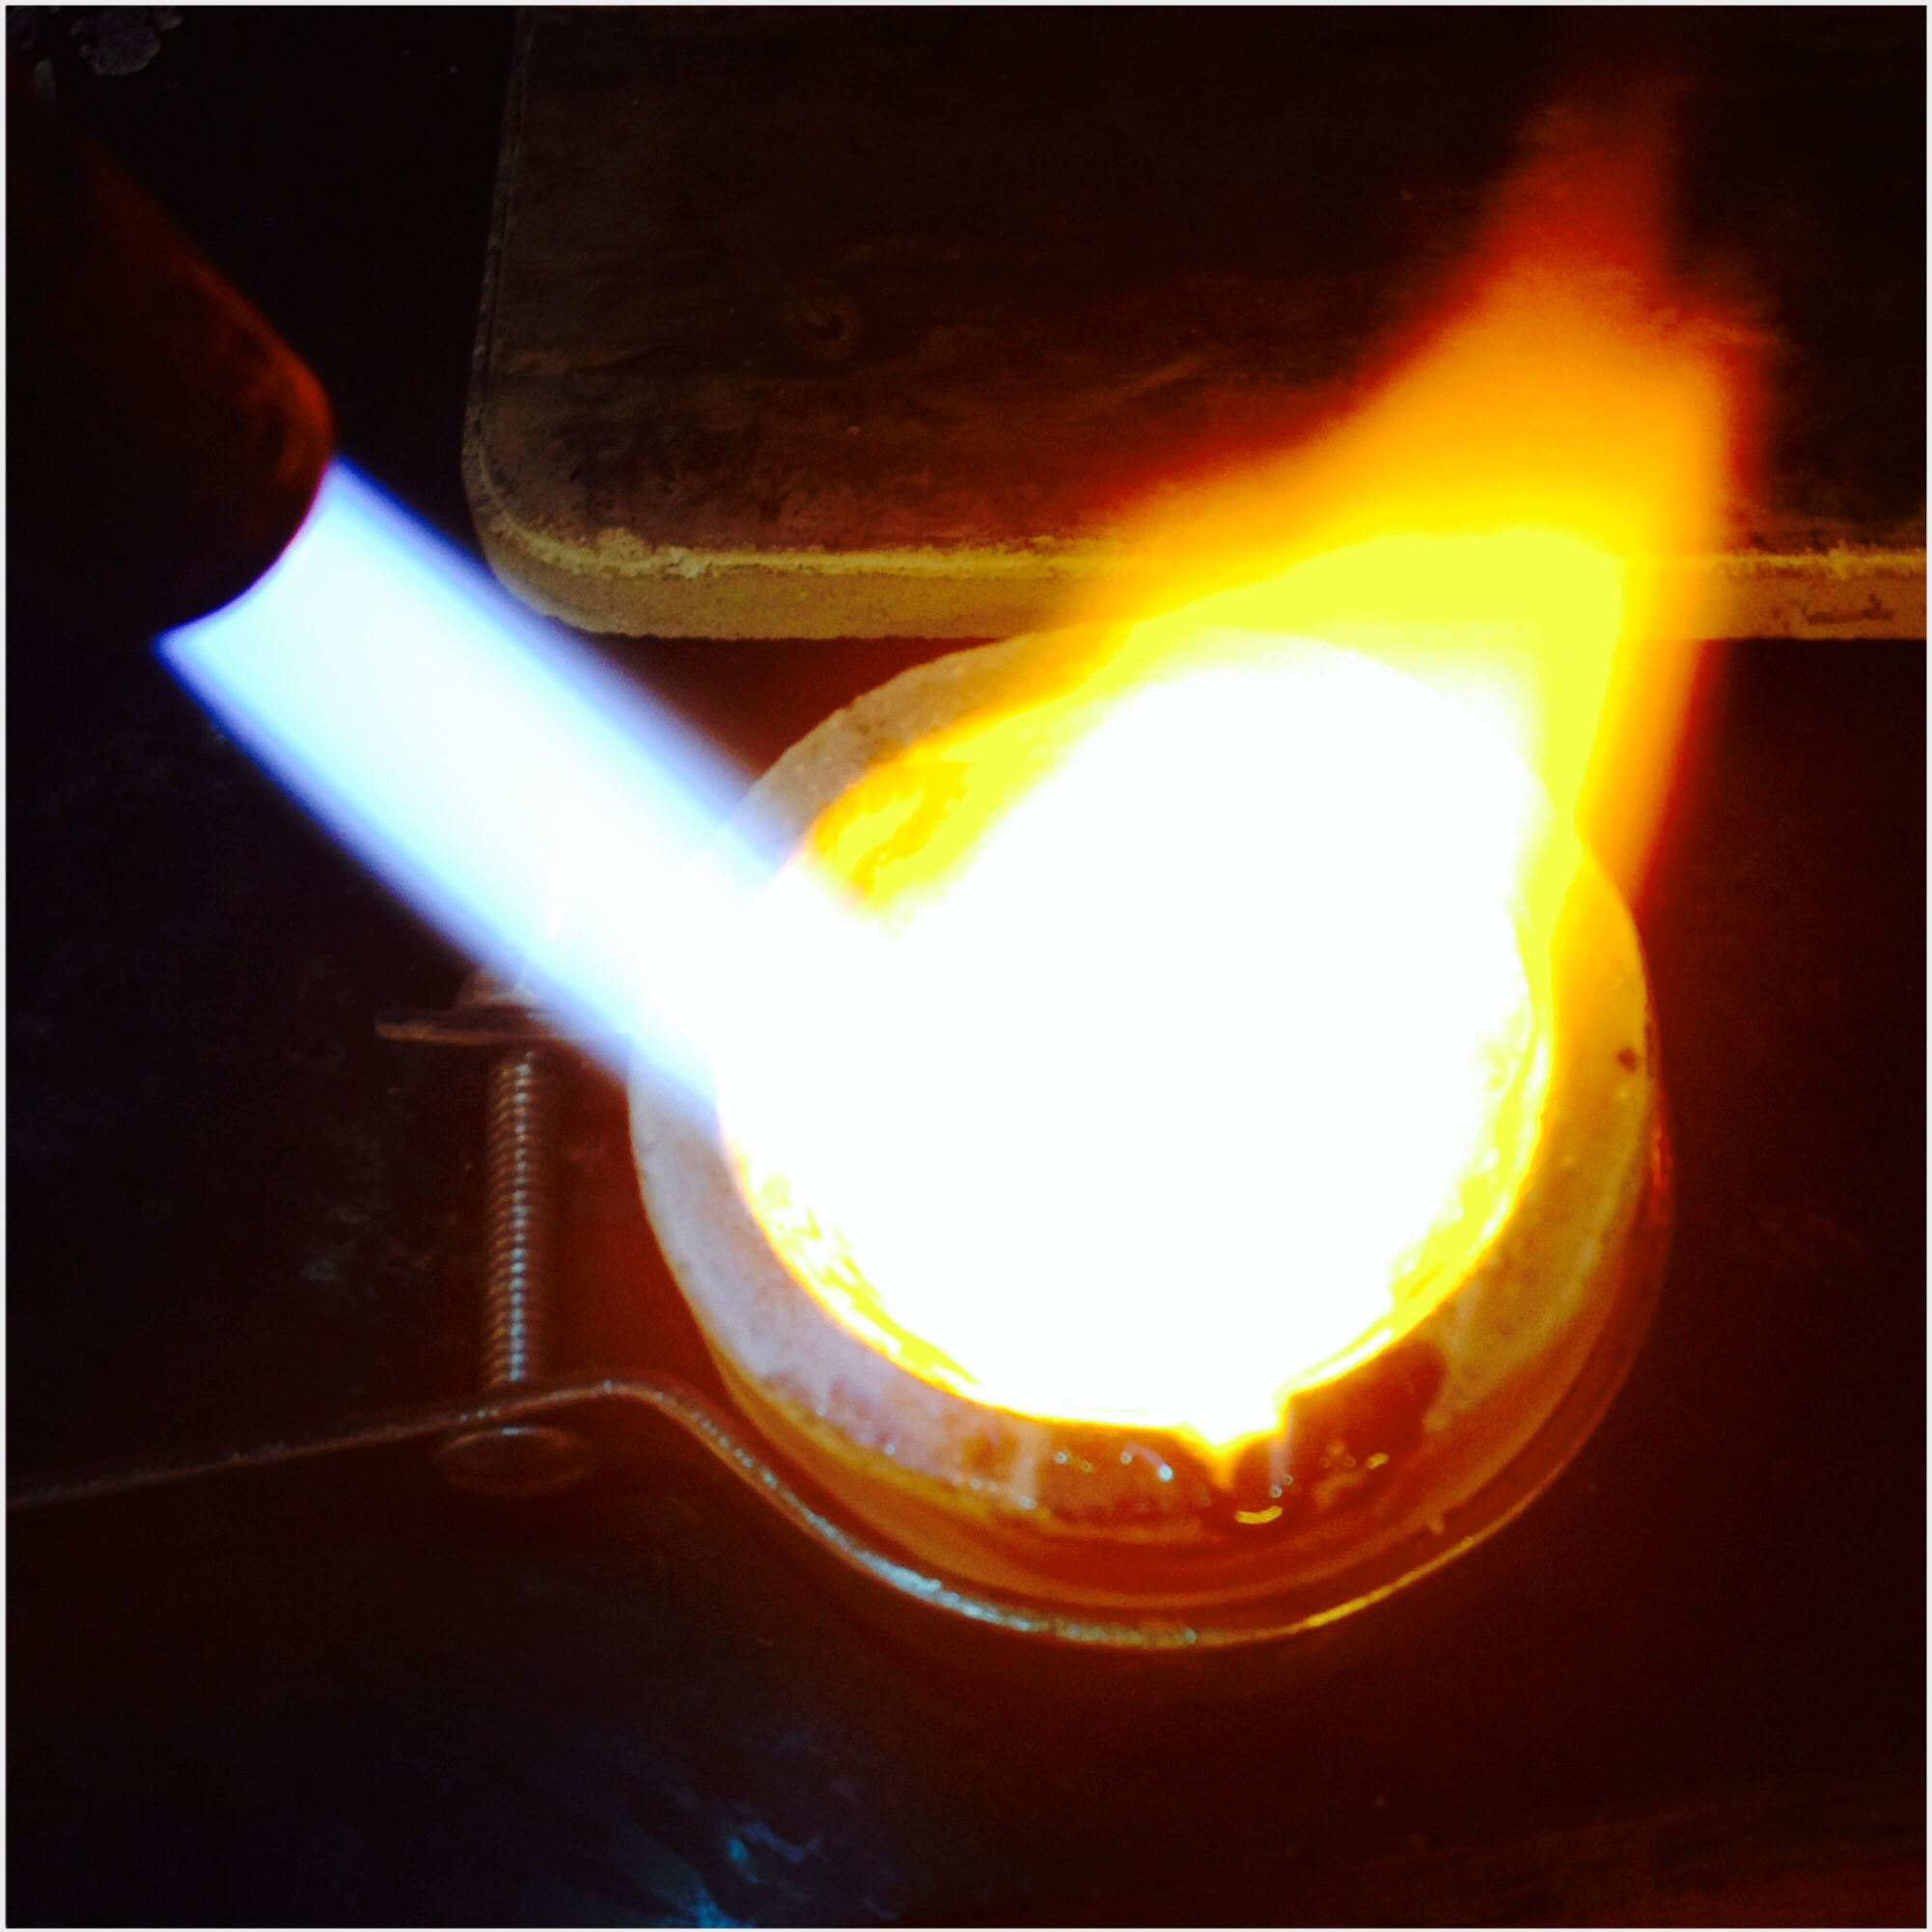 melting metal in the crucible